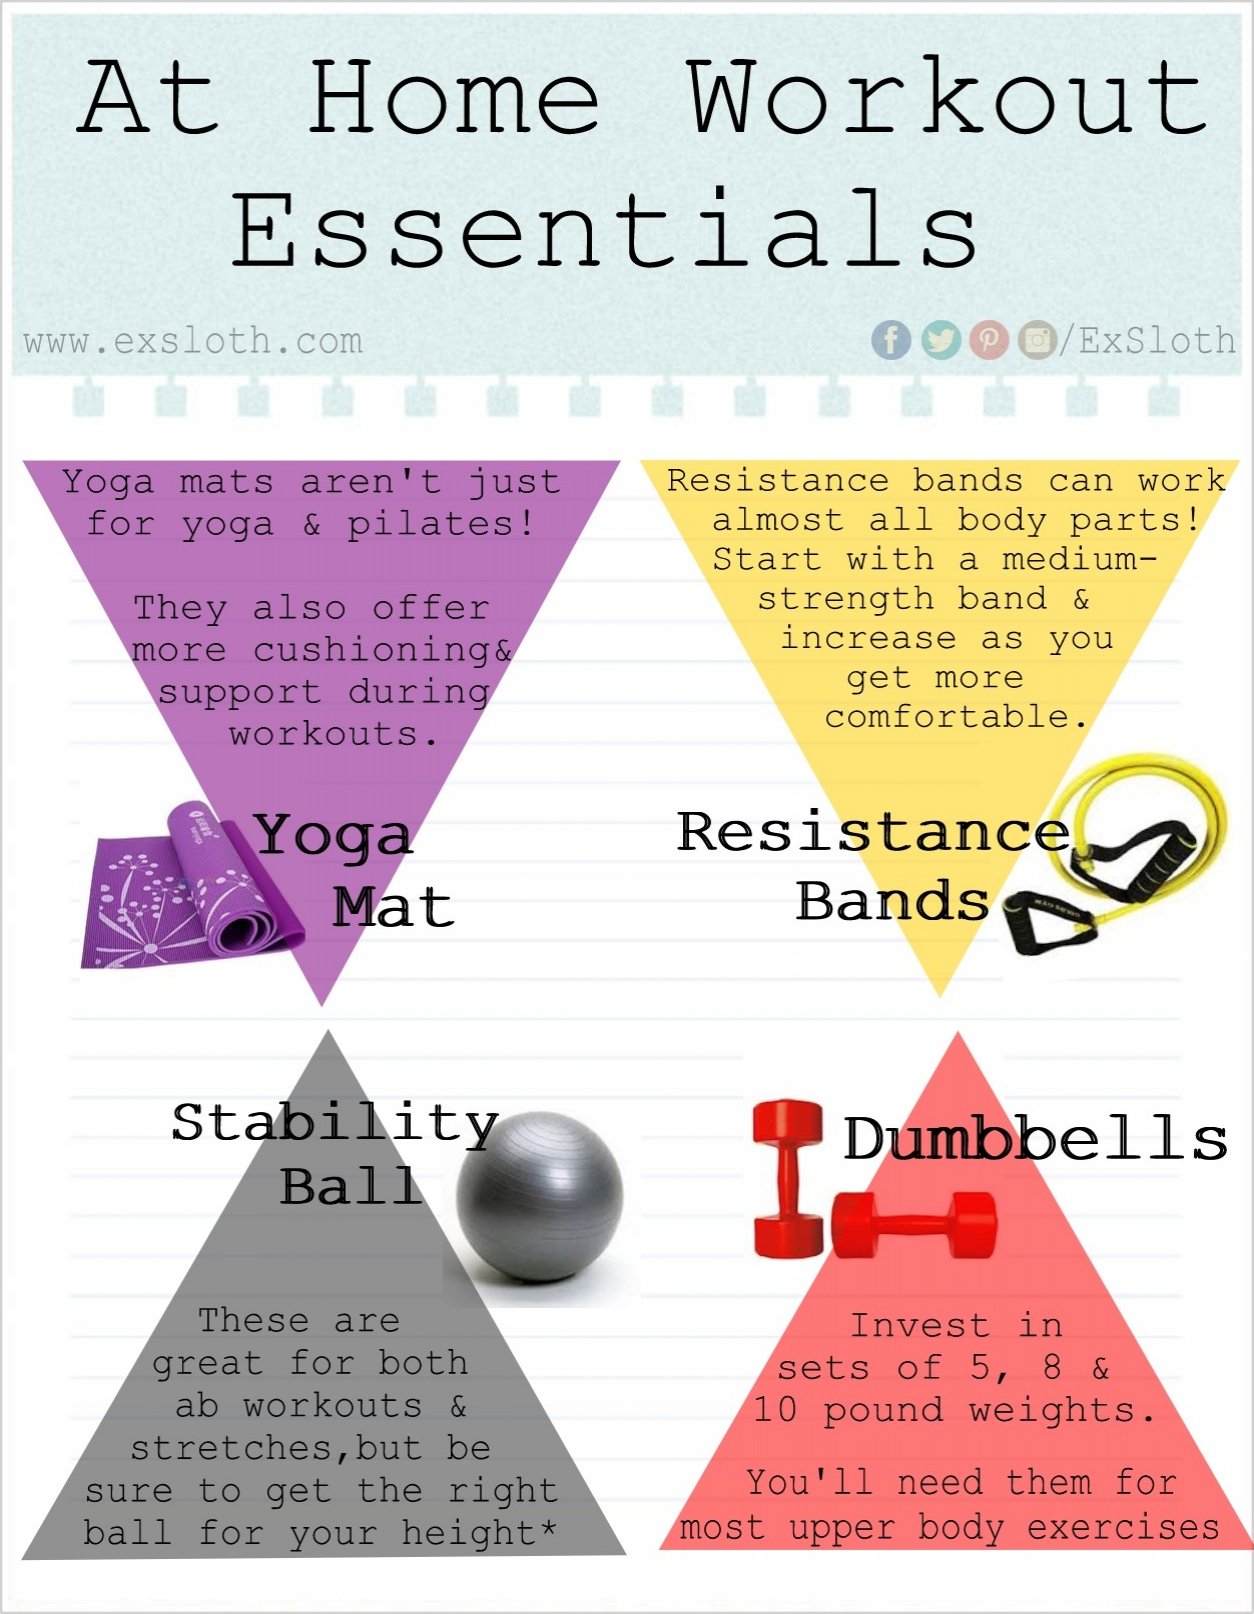 At Home Workout Essentials - An Infographic - Diary of an ExSloth